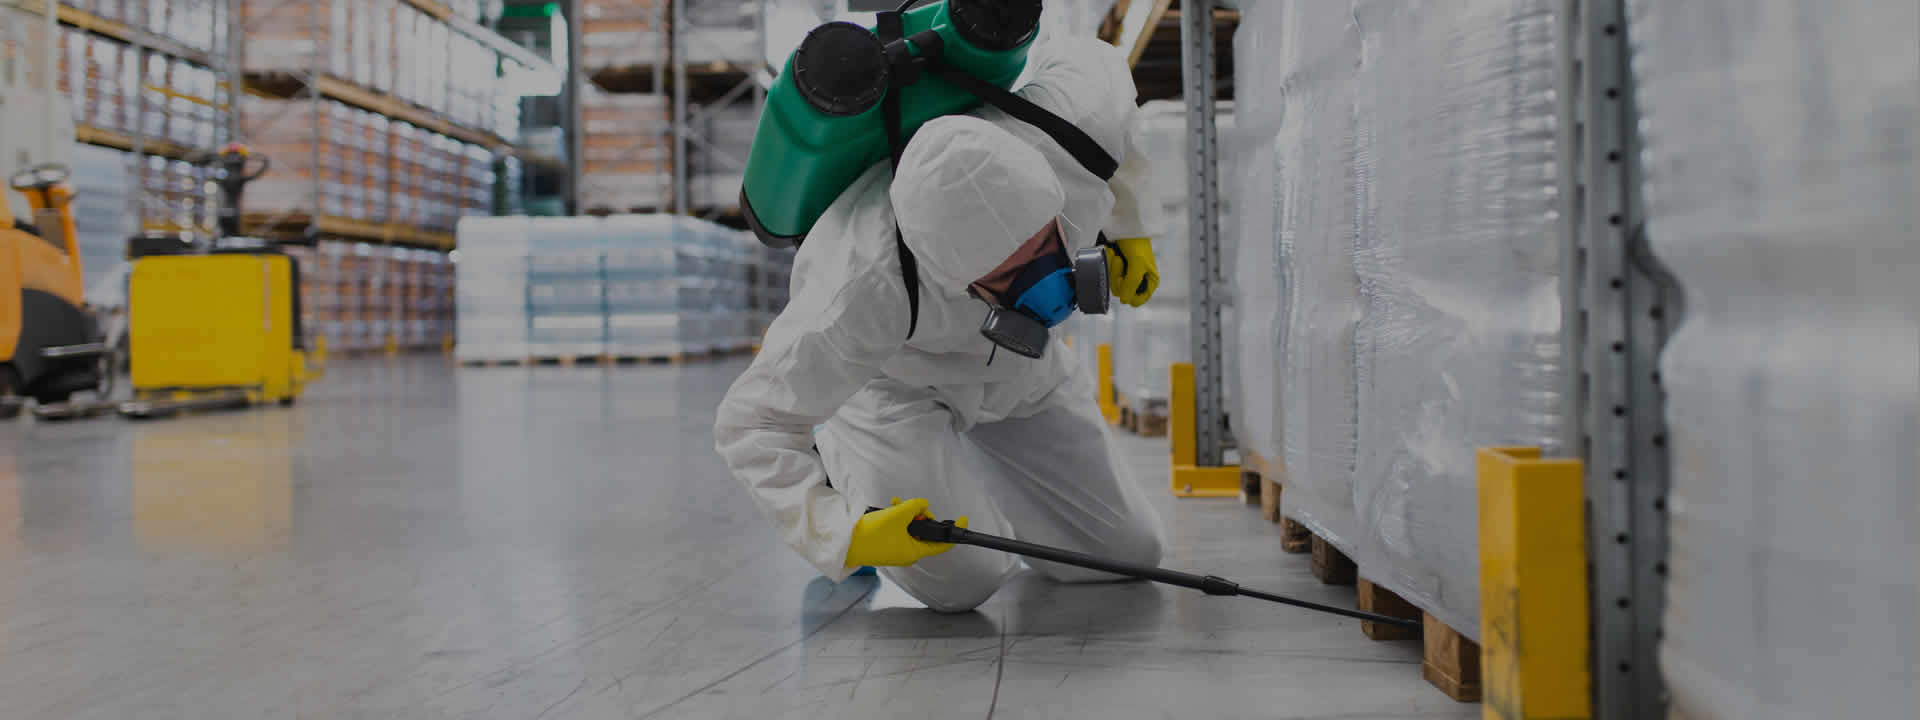 How Pest Control Services Improve Quality Of Life?